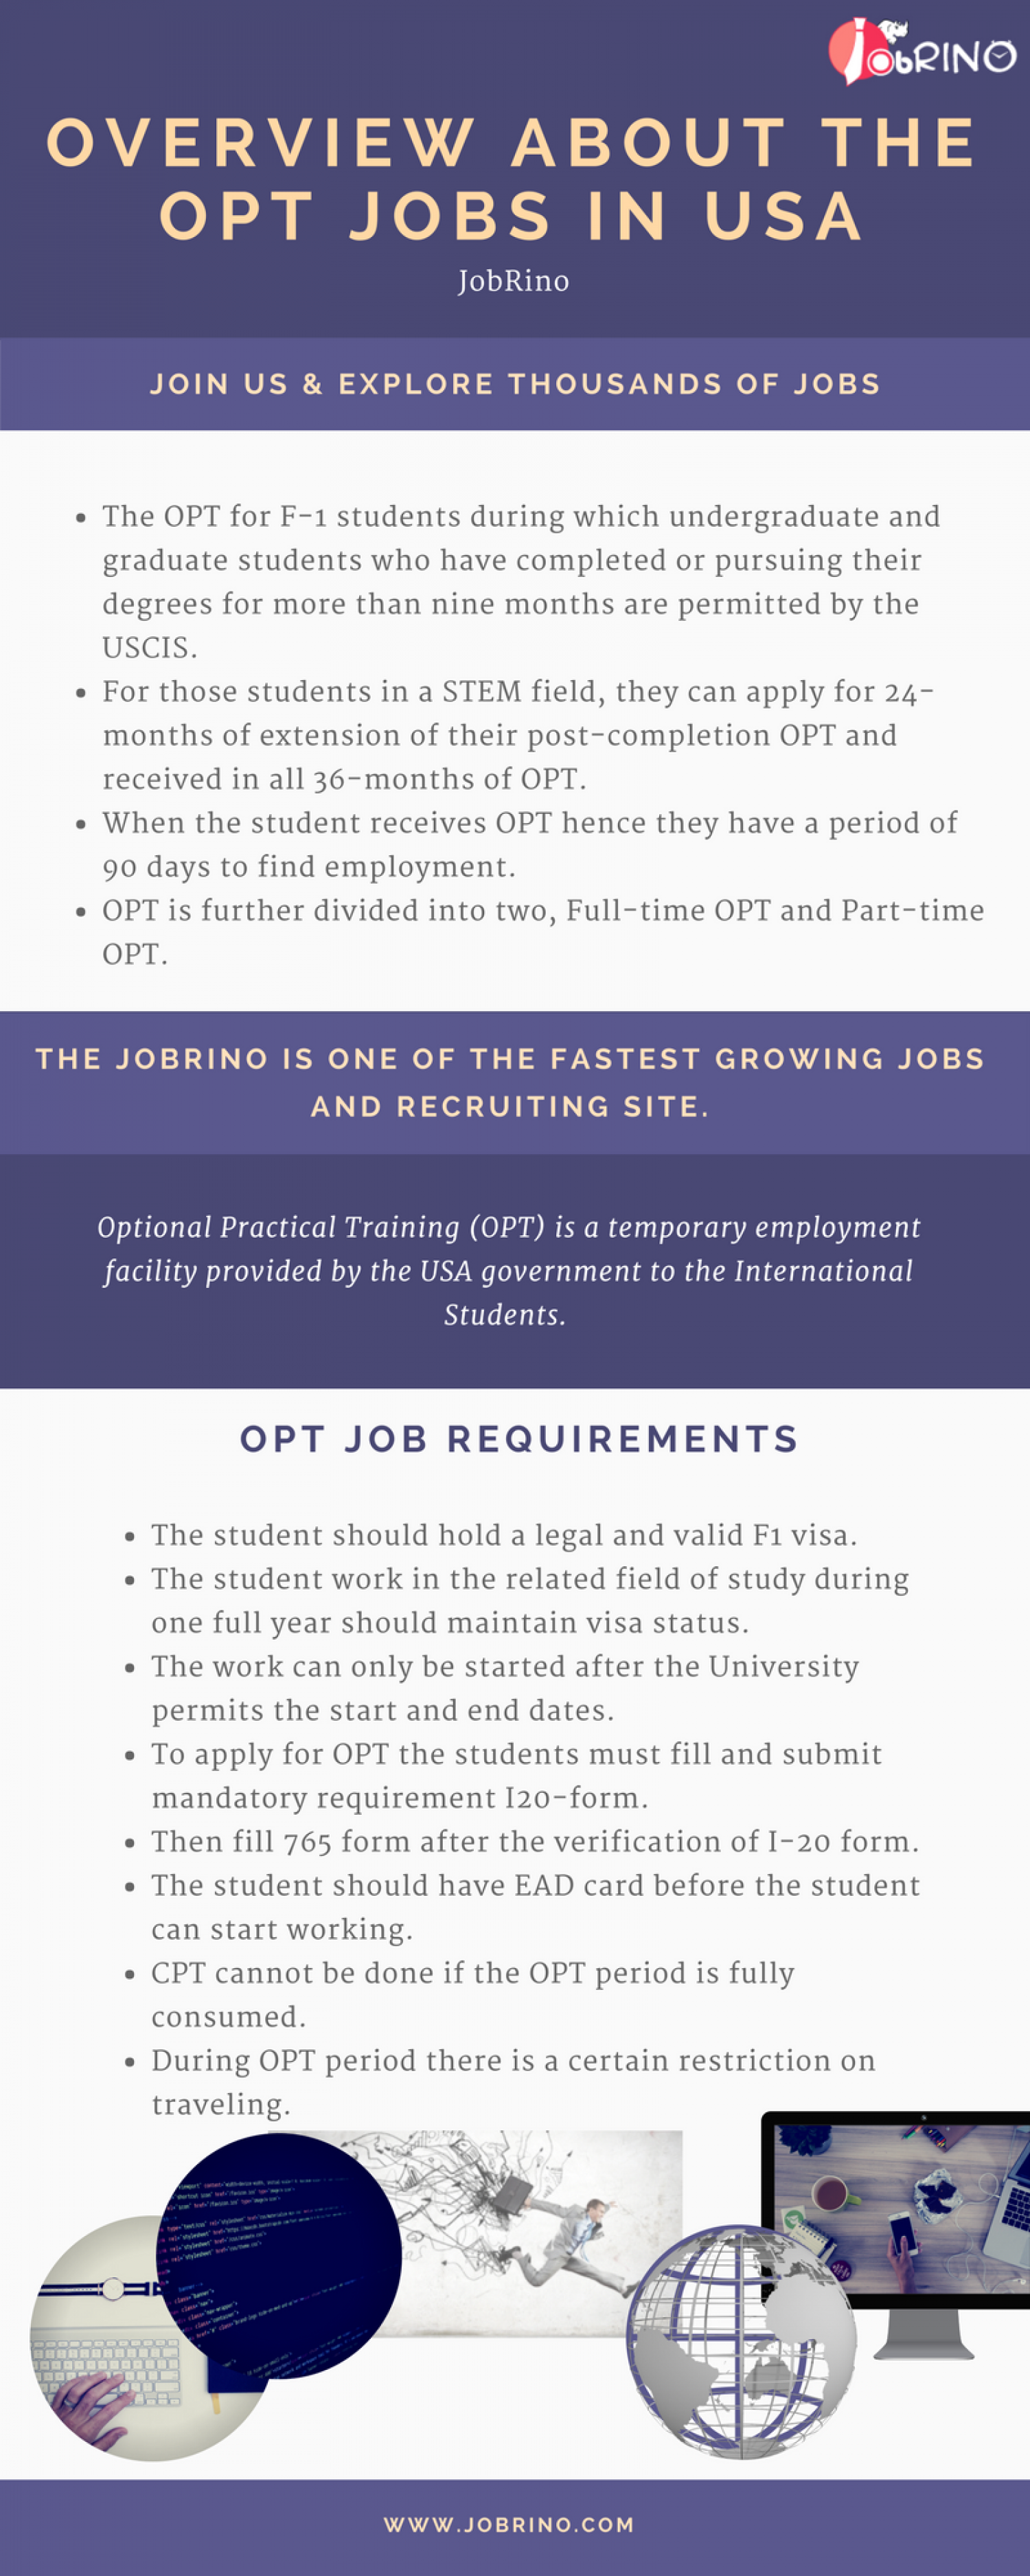 Find the overview of the opt jobs in USA - JobRino Infographic